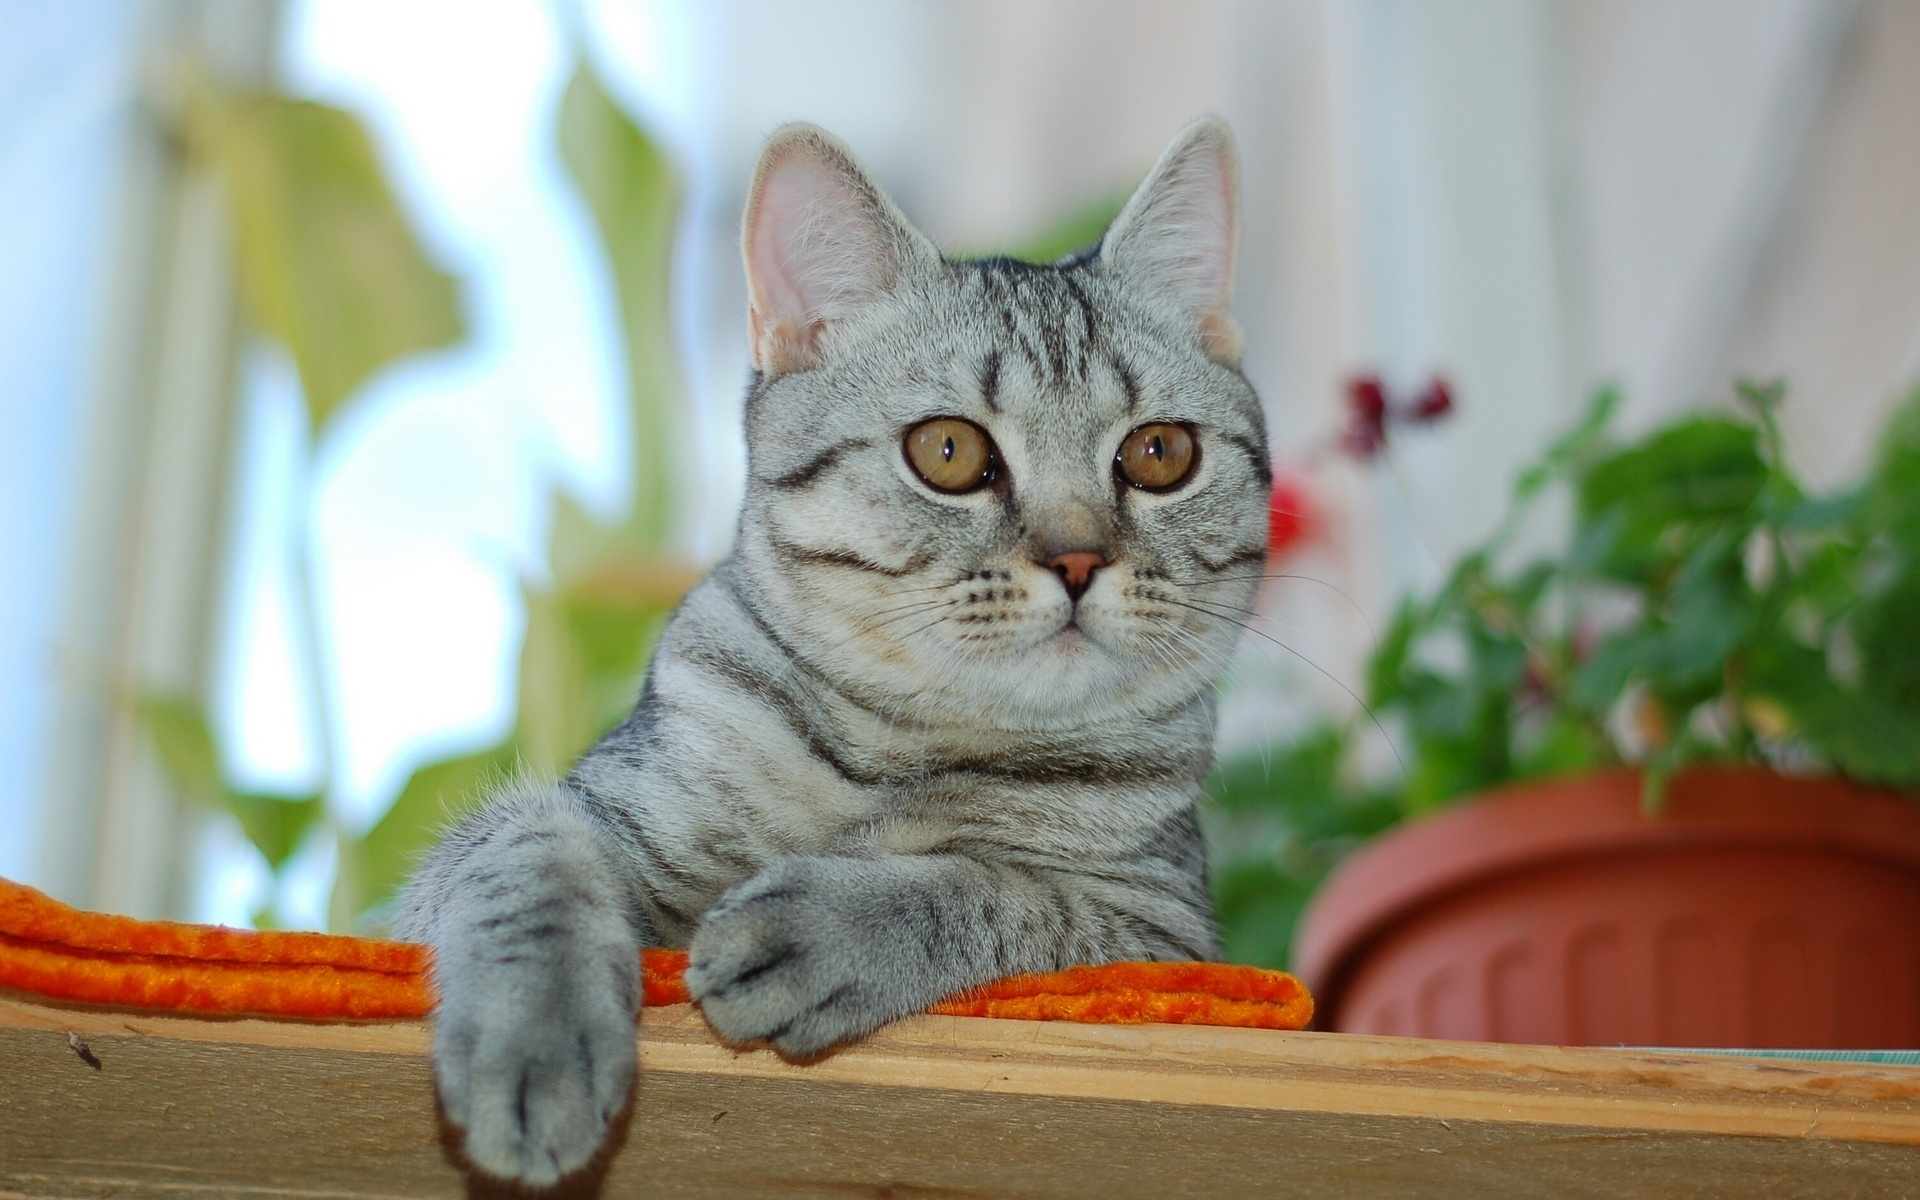 49609 download wallpaper Animals, Cats screensavers and pictures for free